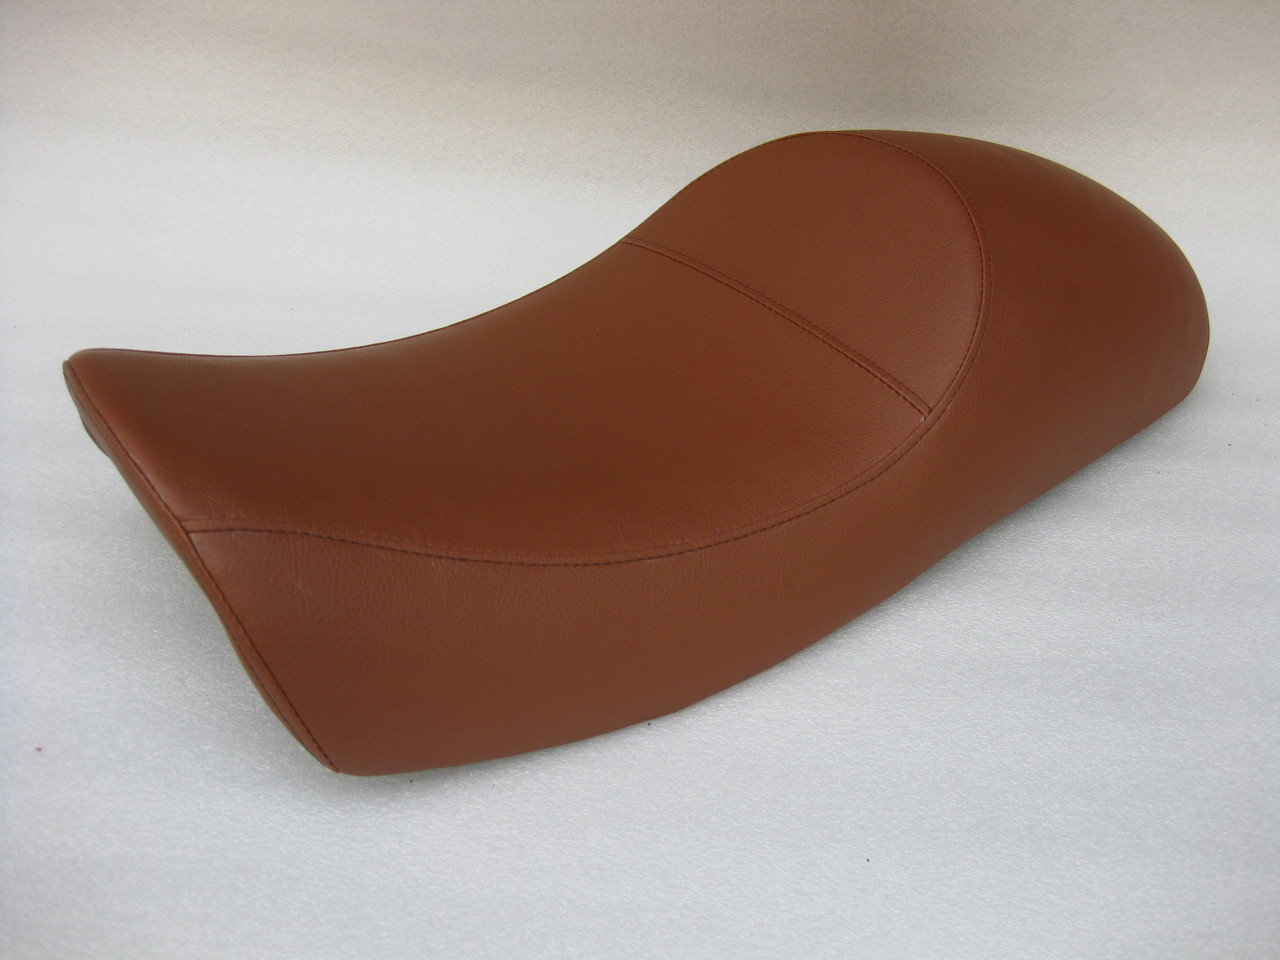 1980 - 1982 Honda CB750C CB750 C CB900C or  1982 - 1983 CB750SC Nighthawk Cafe Racer Complete Motorcycle Seat #4286